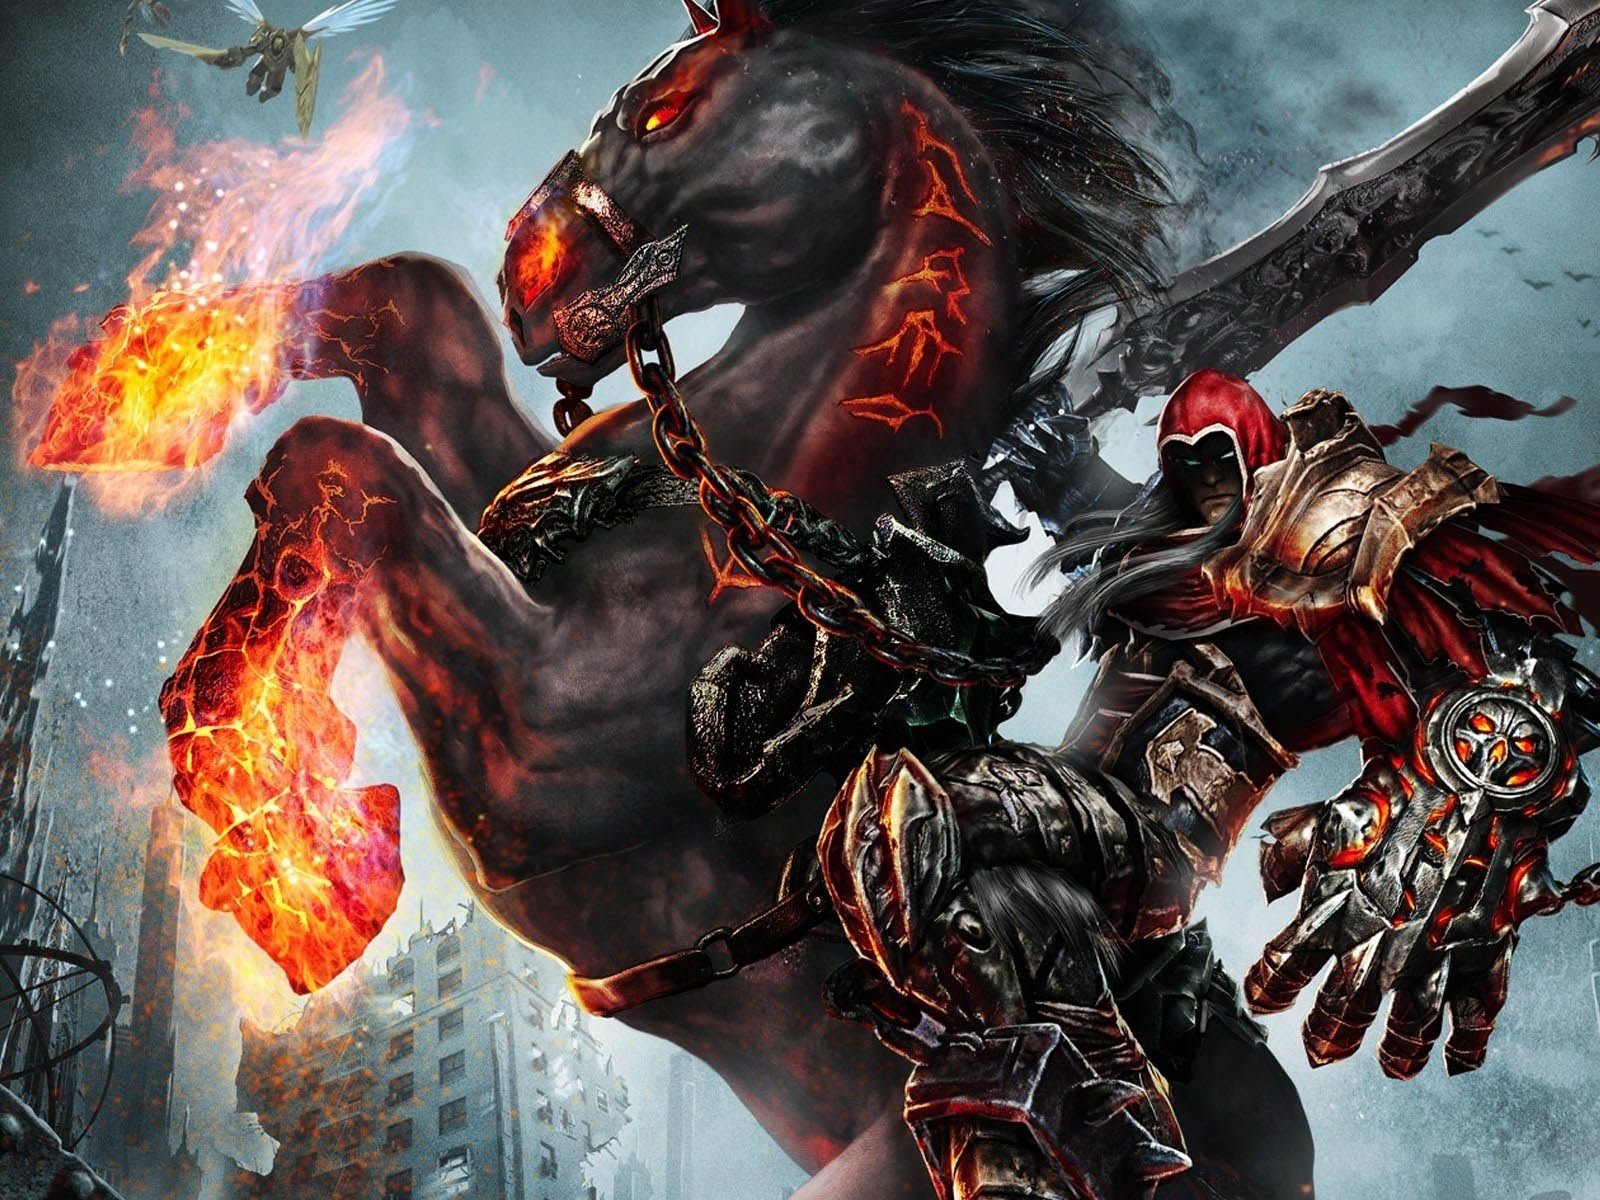 Darksiders Wrath of WarDarksiders 4 Horsemen Wallpaper 1600x1200